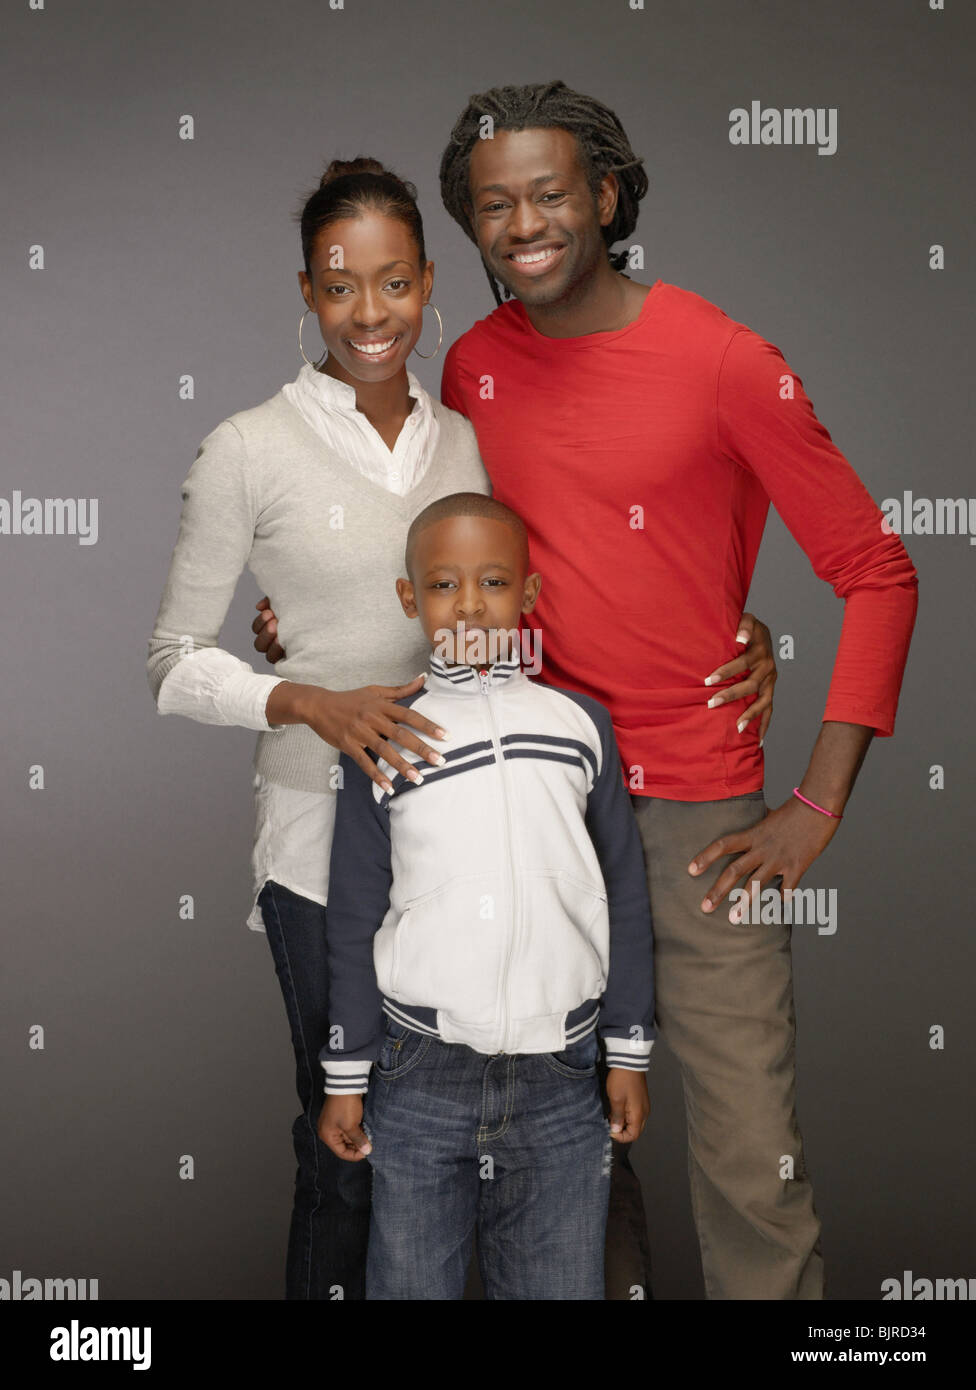 Portrait of a family - Stock Image